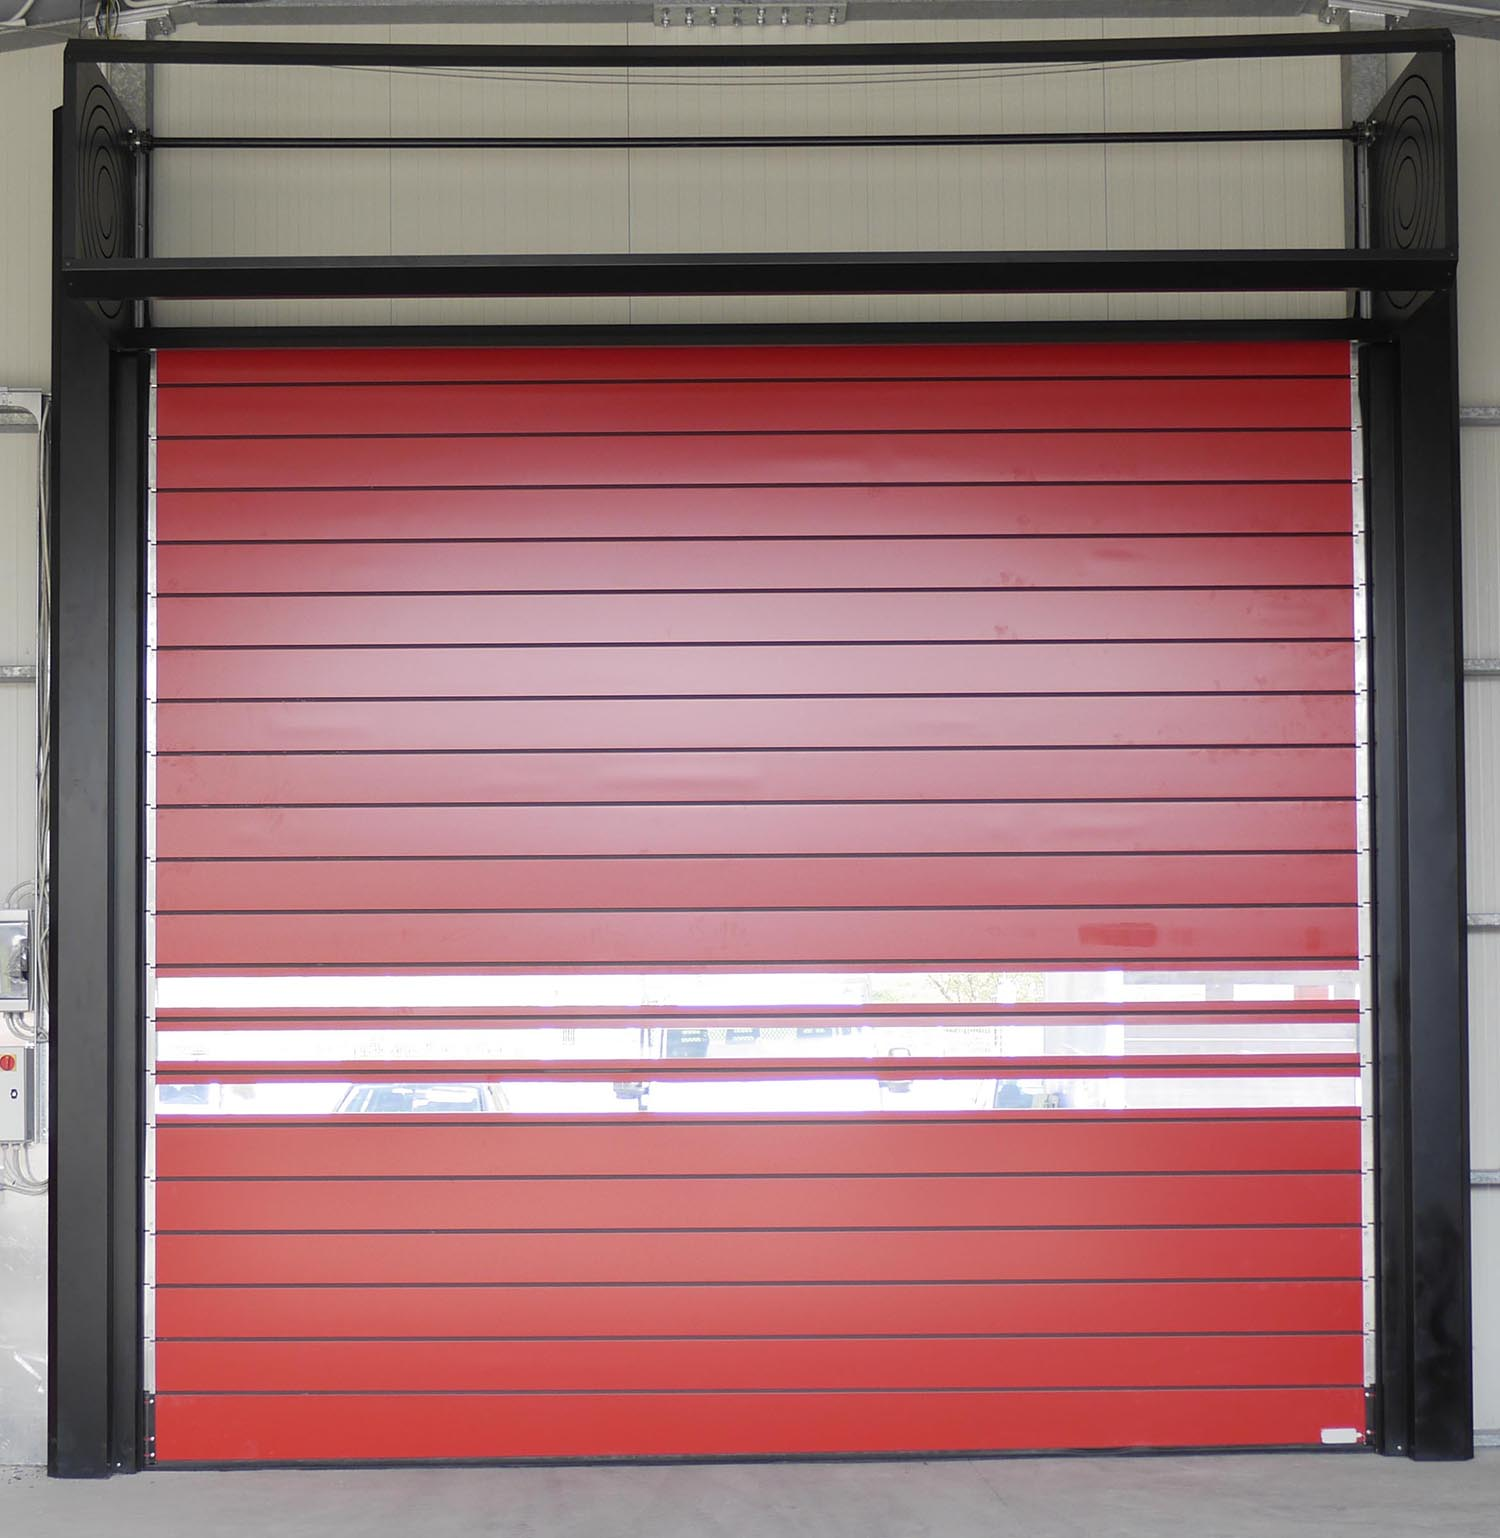 An open and shut case for specifying premium doors